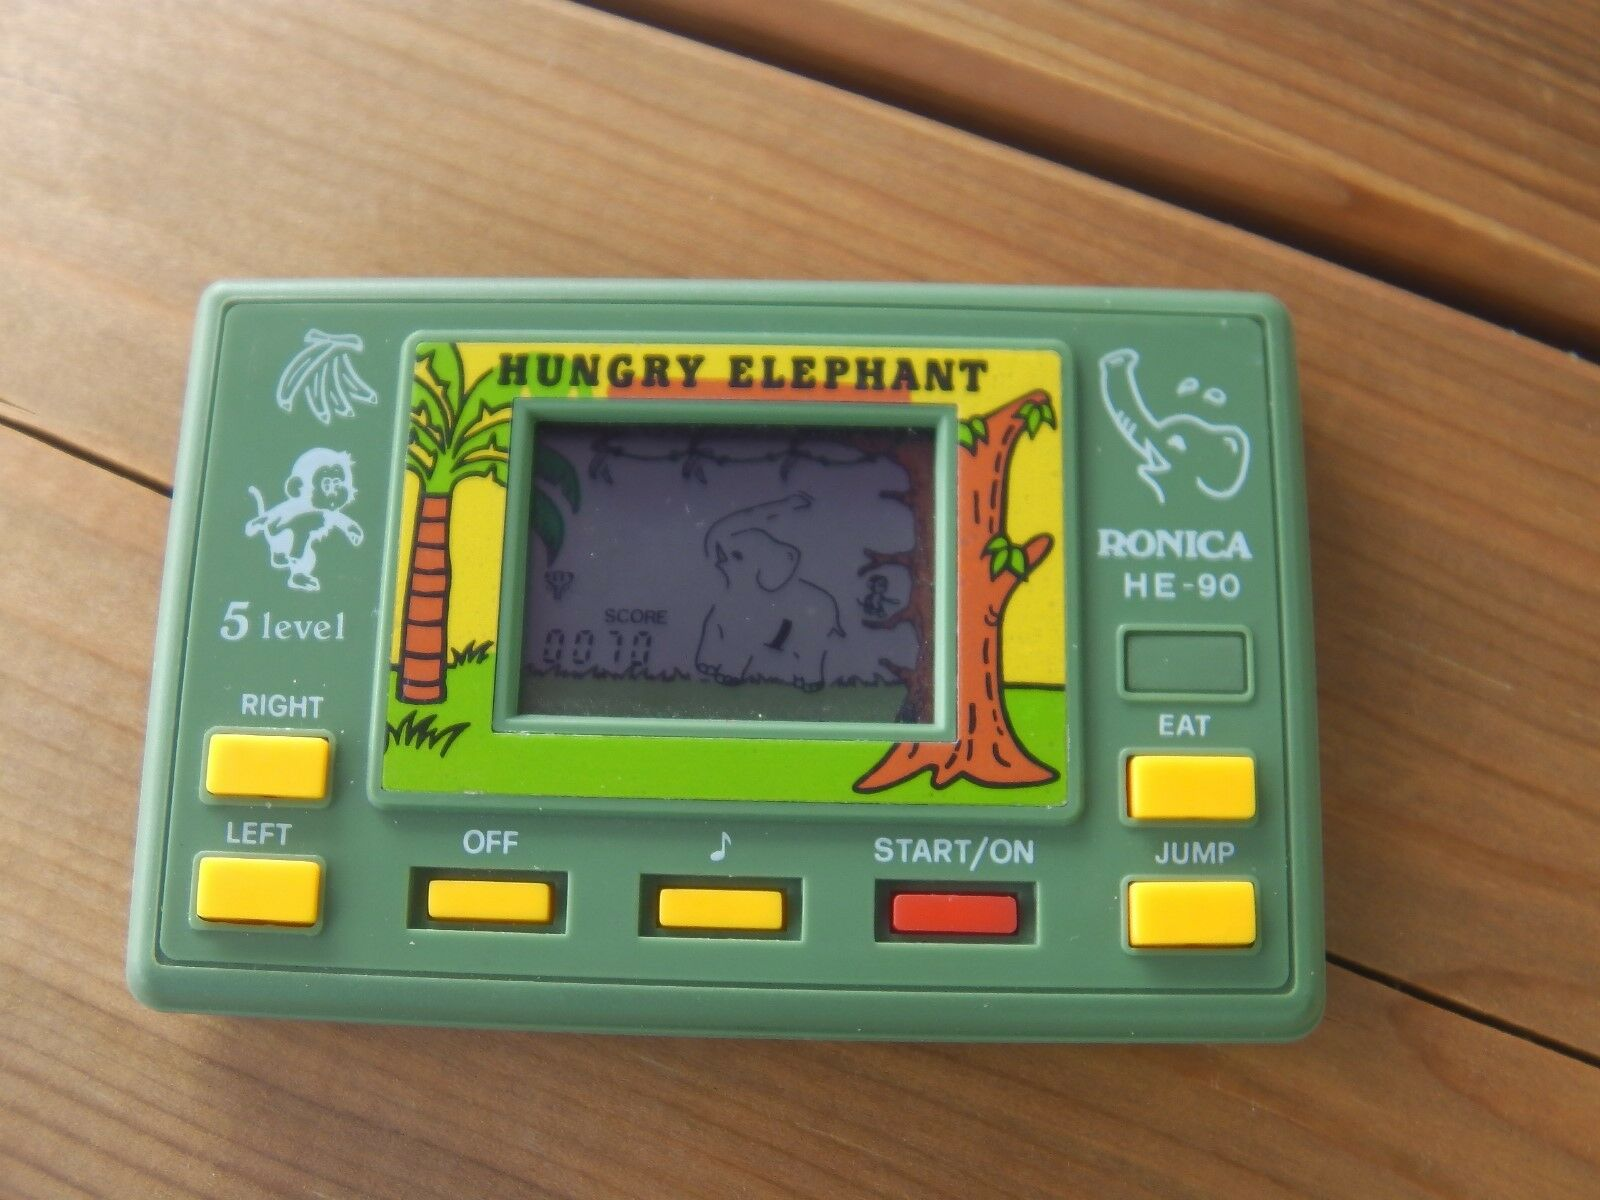 Lcd game game game Ronica   Hungry elephant   game watch ec4a1d